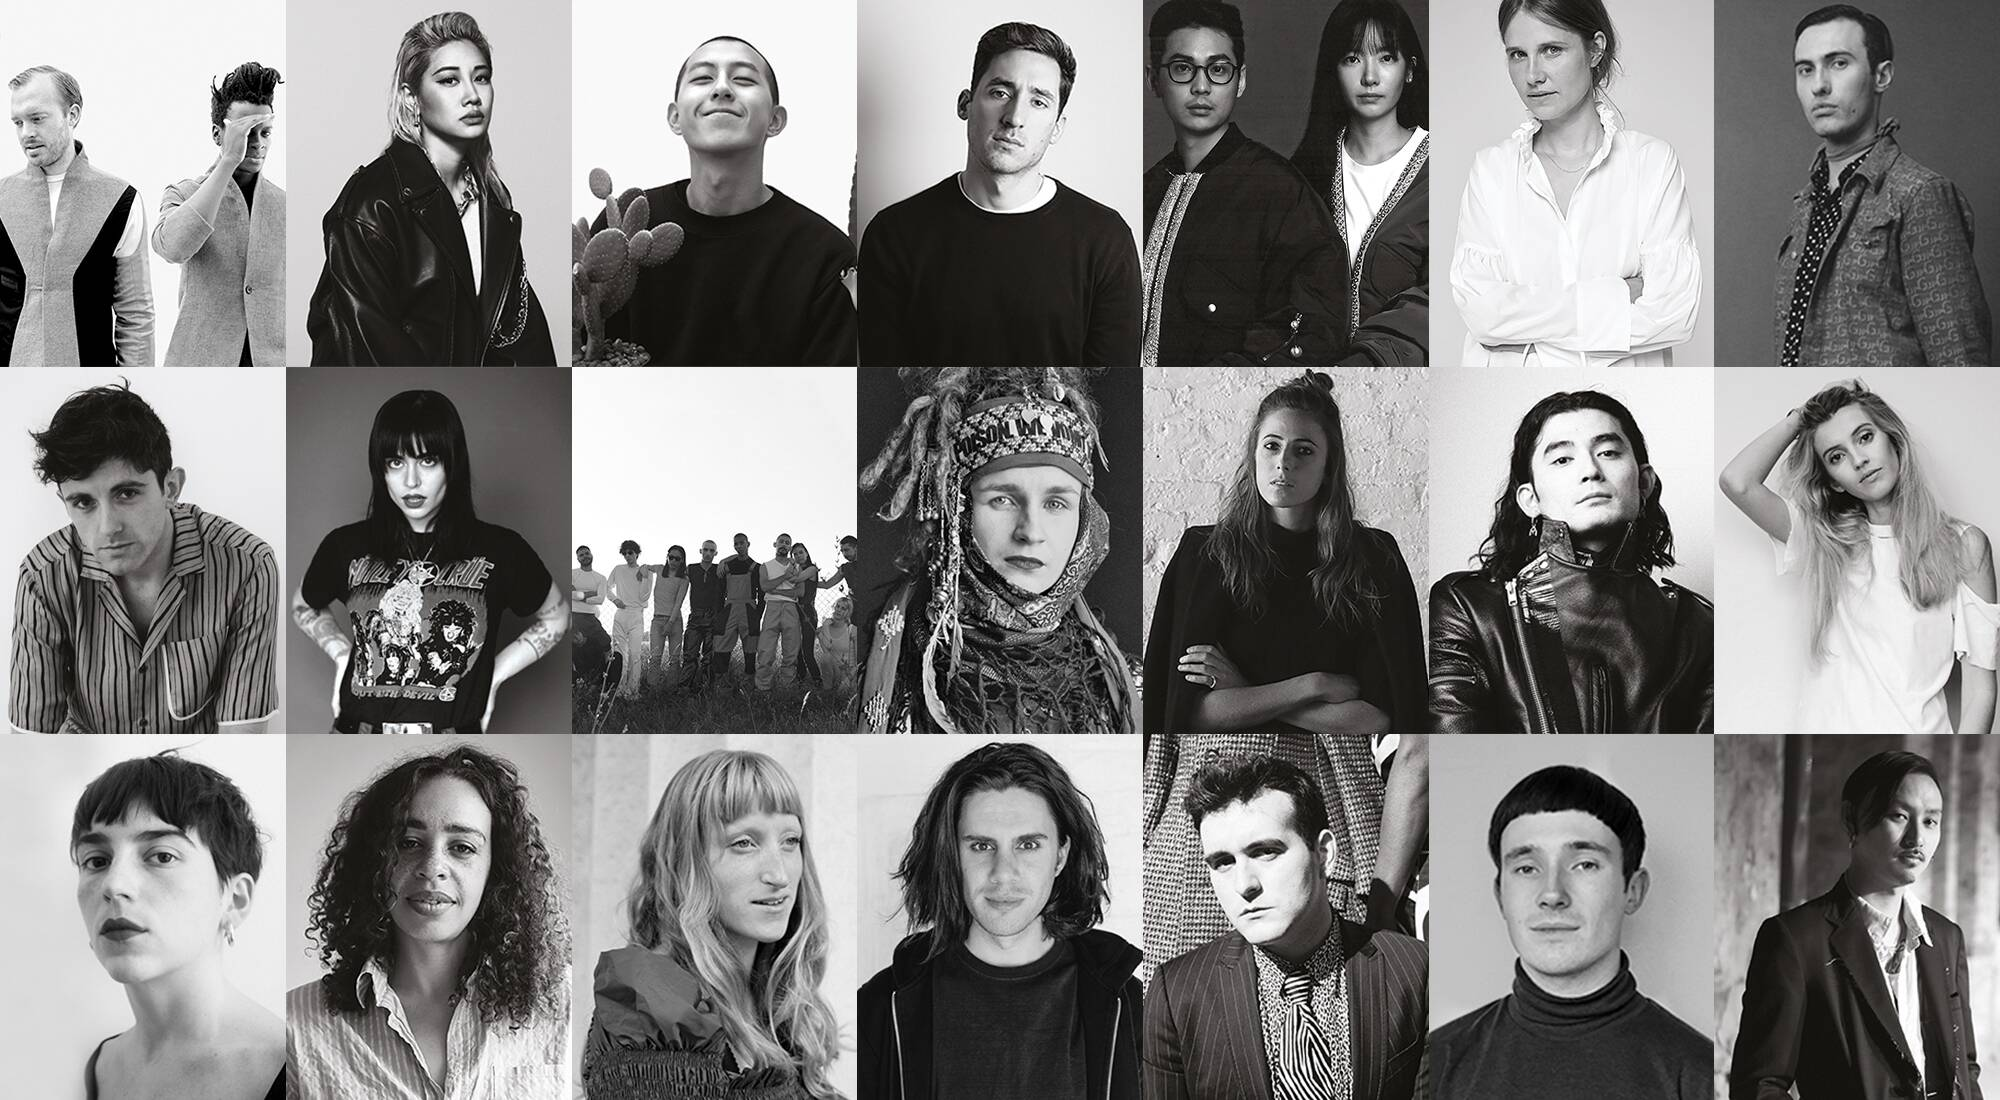 Lvmh Prize For Young Fashion Designers 2017 Lvmh Announces The List Of The 21 Shortlisted Designers Lvmh